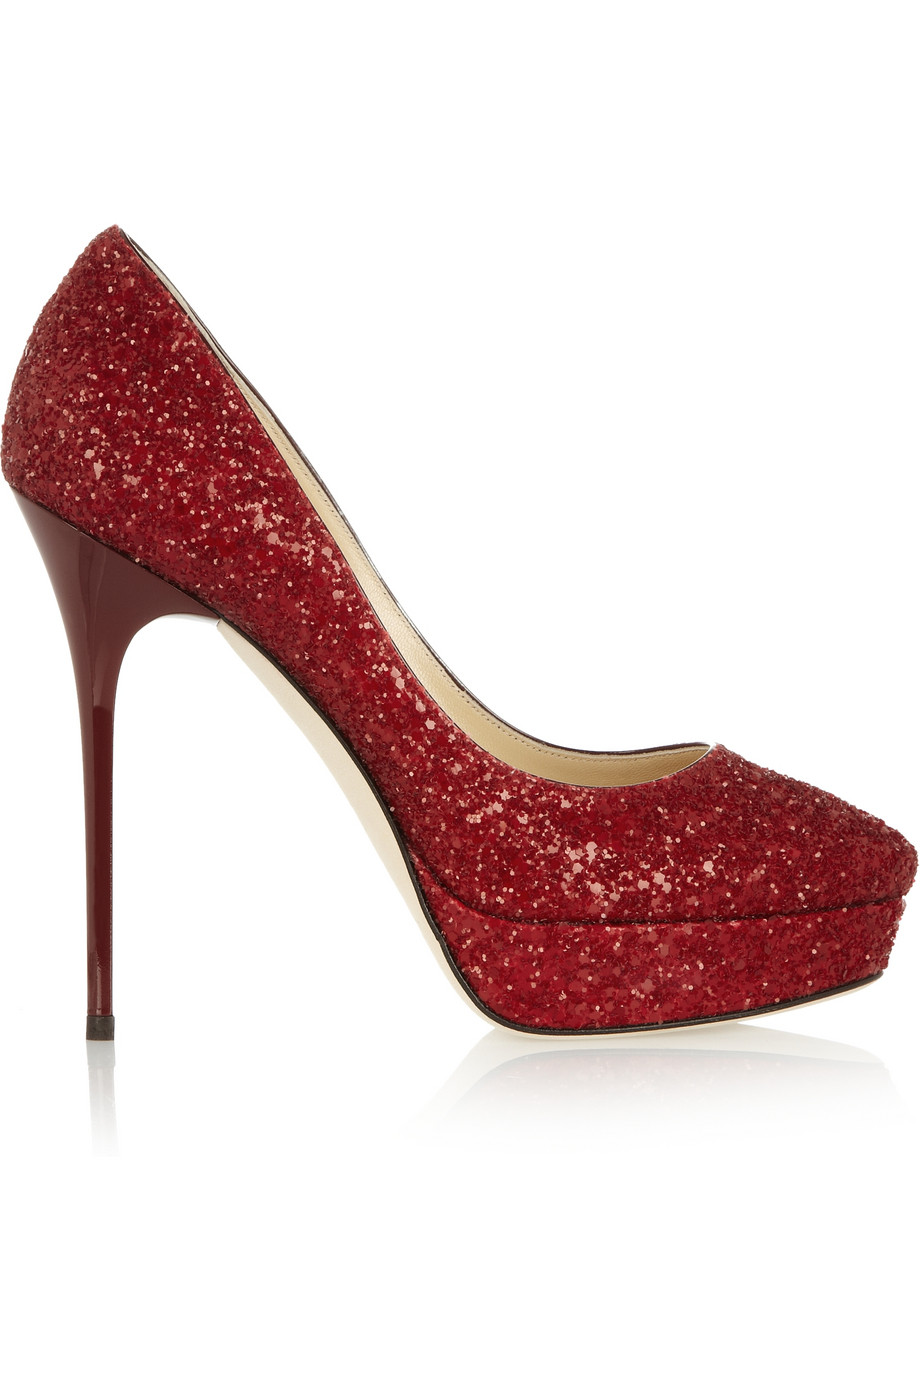 Jimmy Choo Cosmic Glitter Finish Leather Pumps In Red Lyst